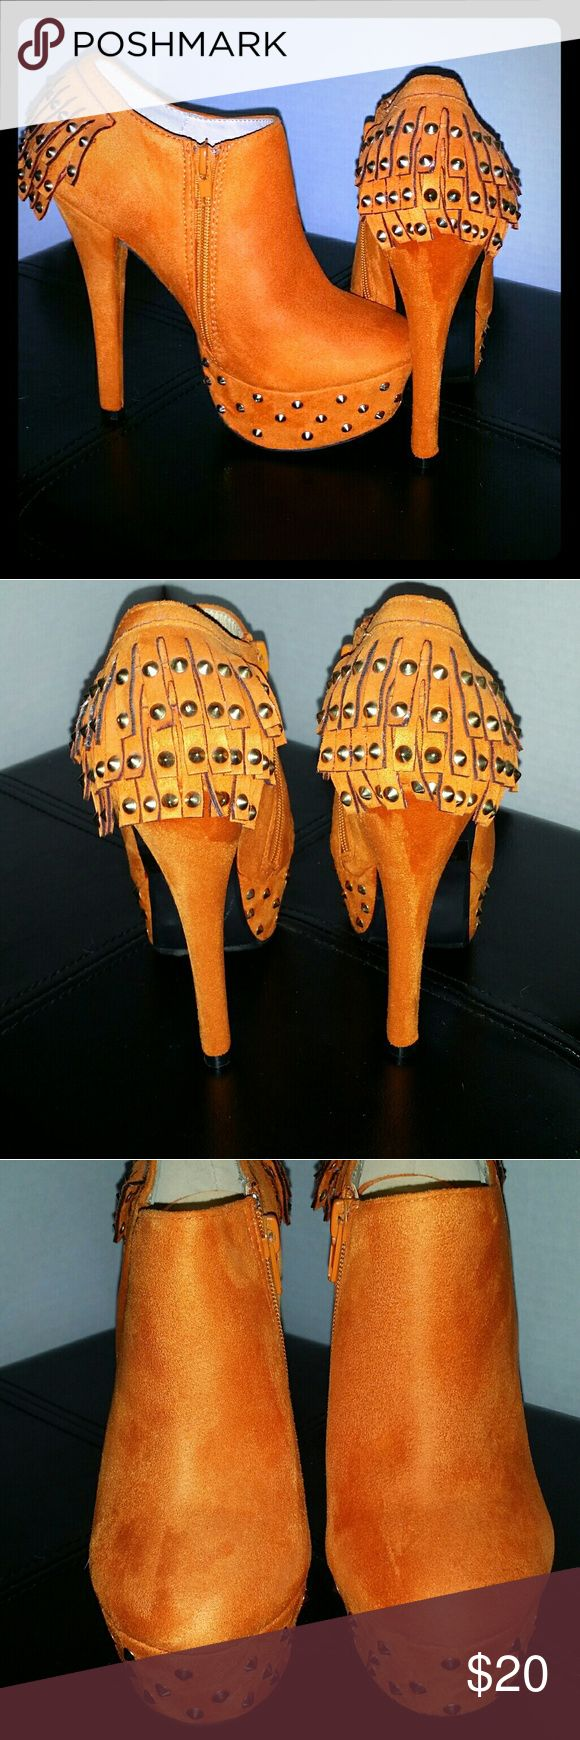 FRH Orange Suede Fringe High Heel Booties FRH Orange suede fringe platform high heel booties with gold tone studs Size 5.5 In great like new condition without the shoebox FRH Shoes Ankle Boots & Booties